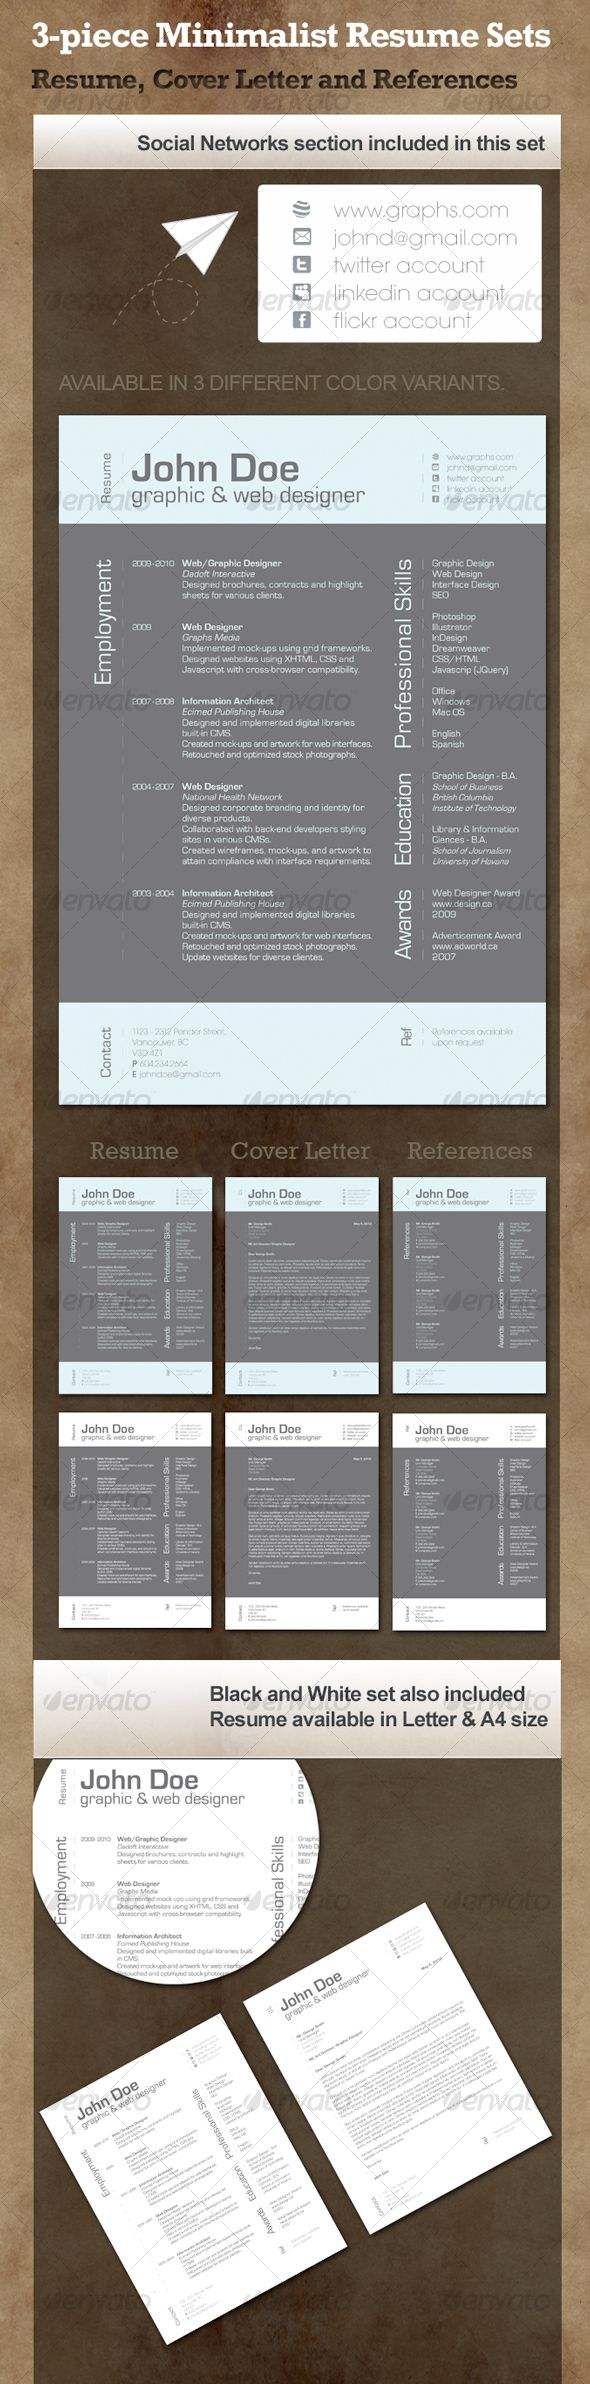 Here are some great resume templates 862